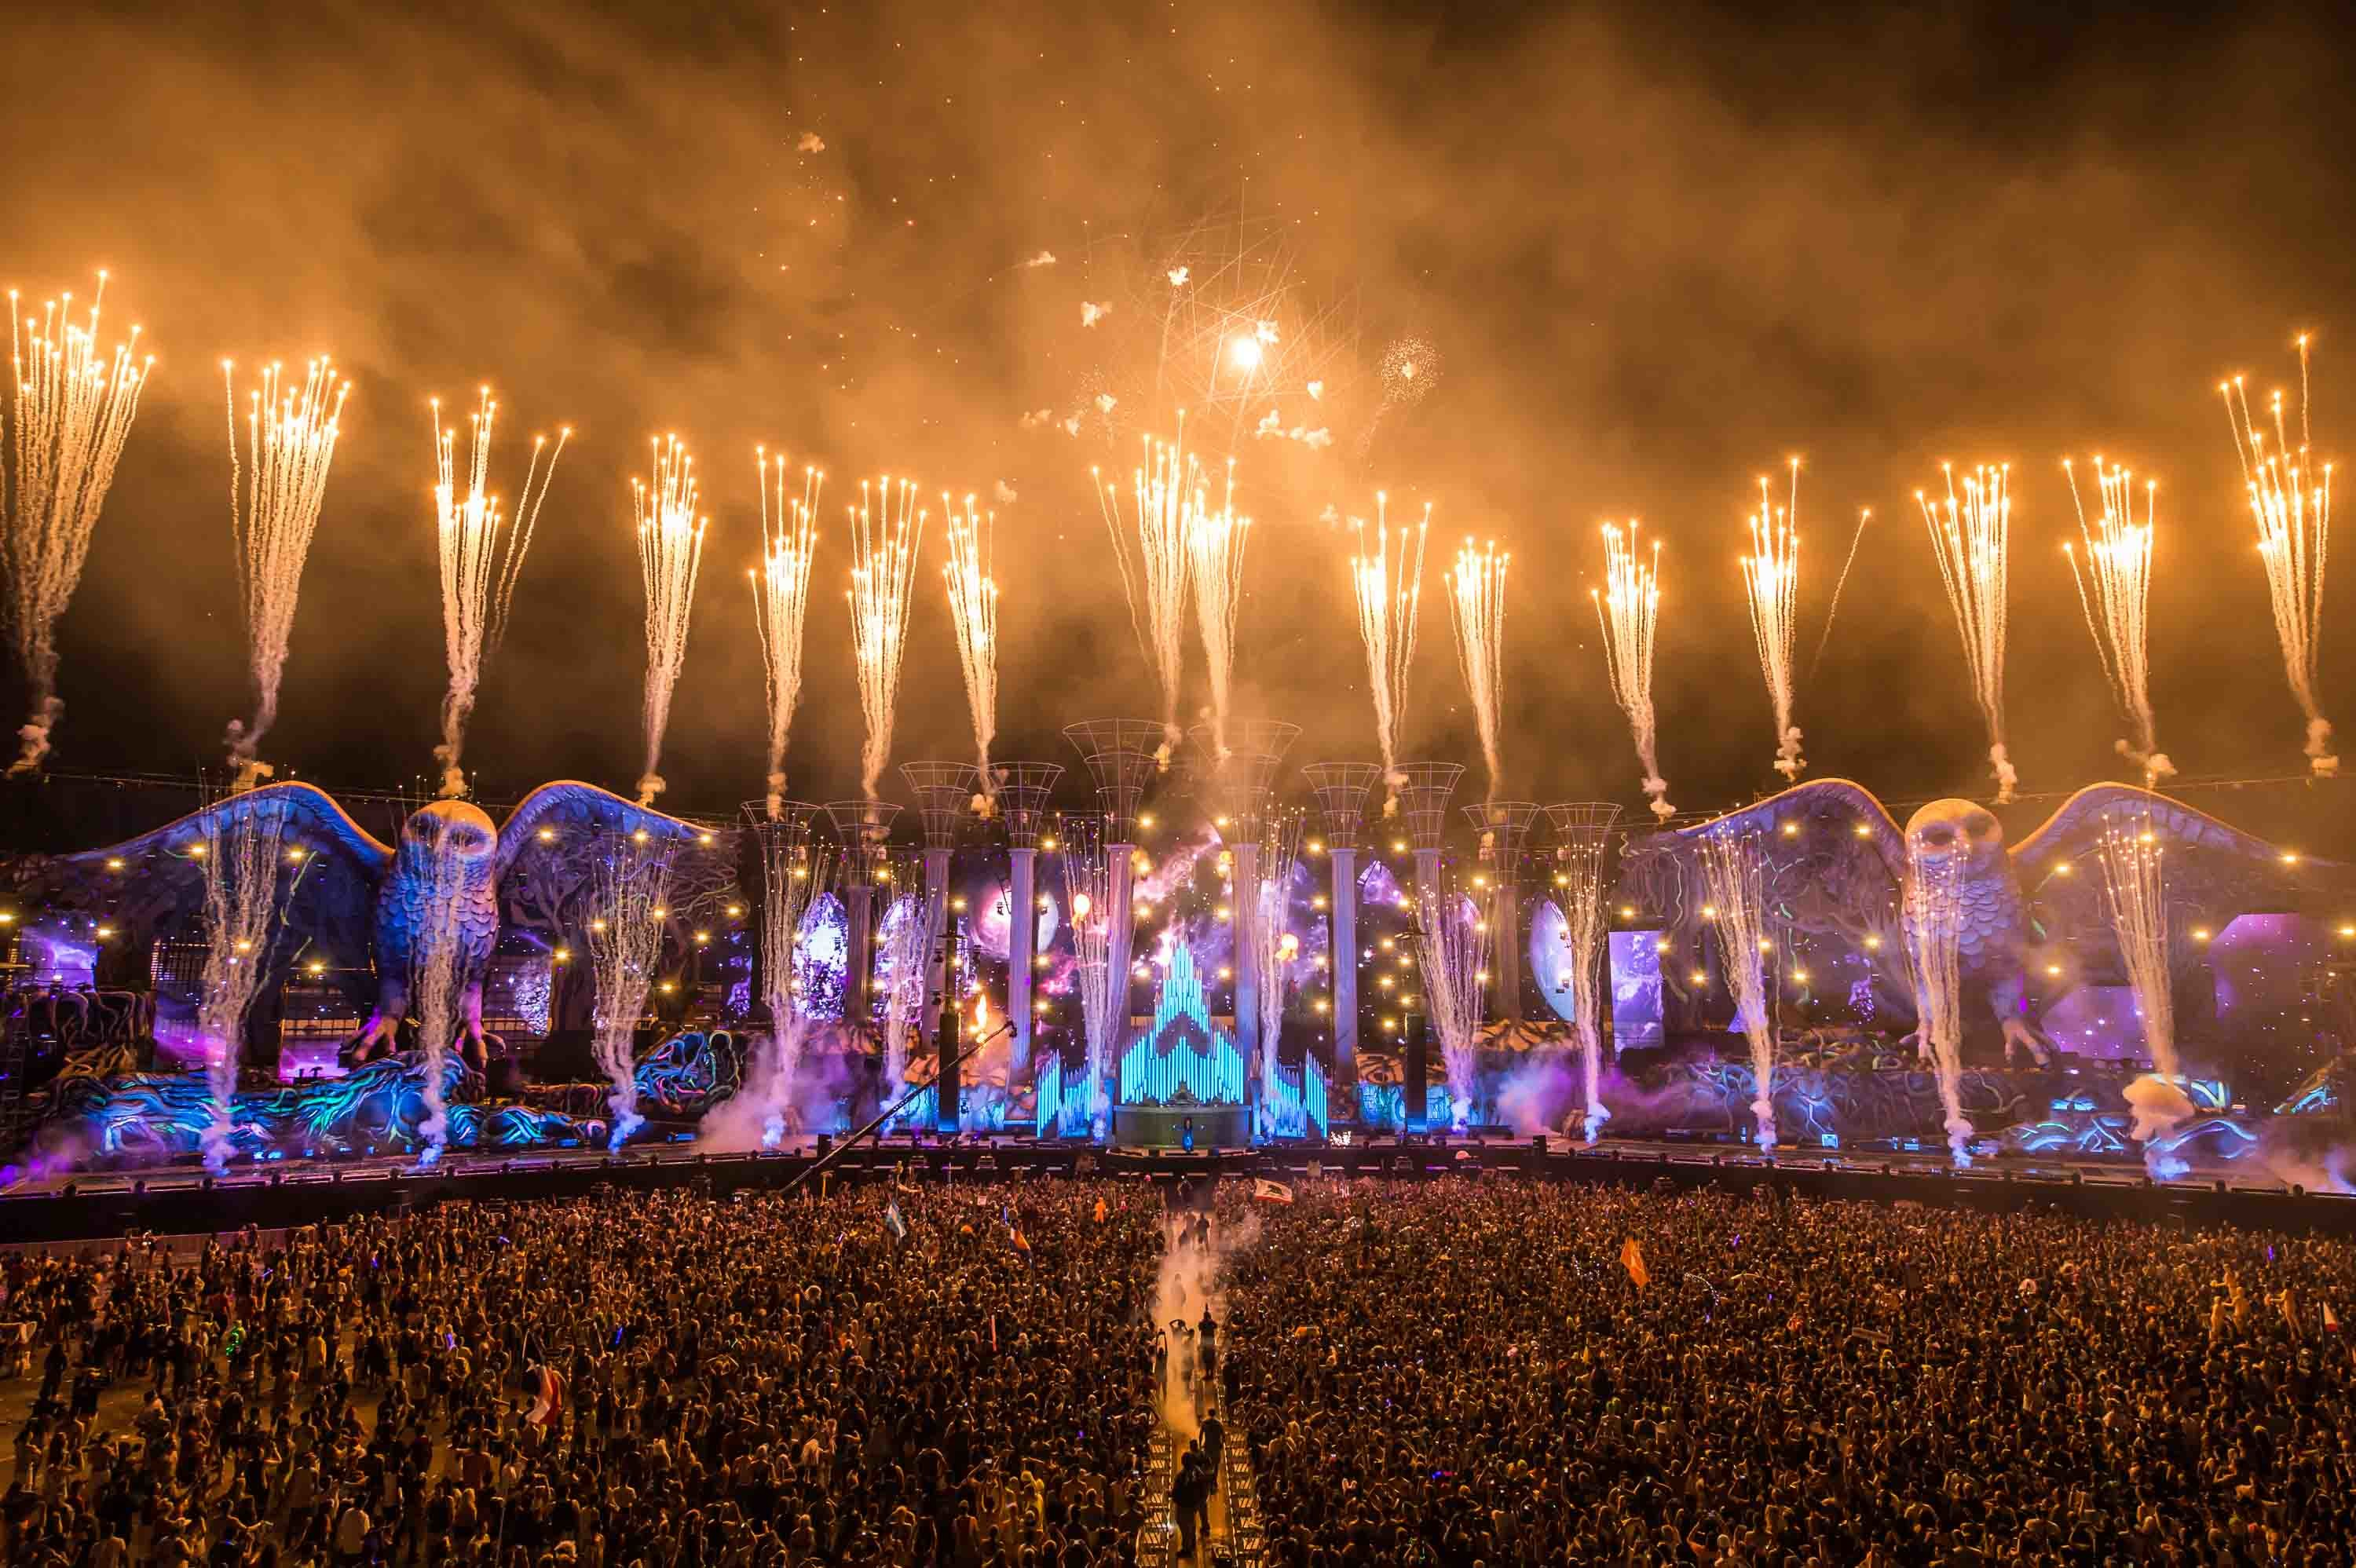 Swedish House Mafia Hd Wallpapers Tomorrowland 2018 Laser Show Hd Wallpaper 72 Images